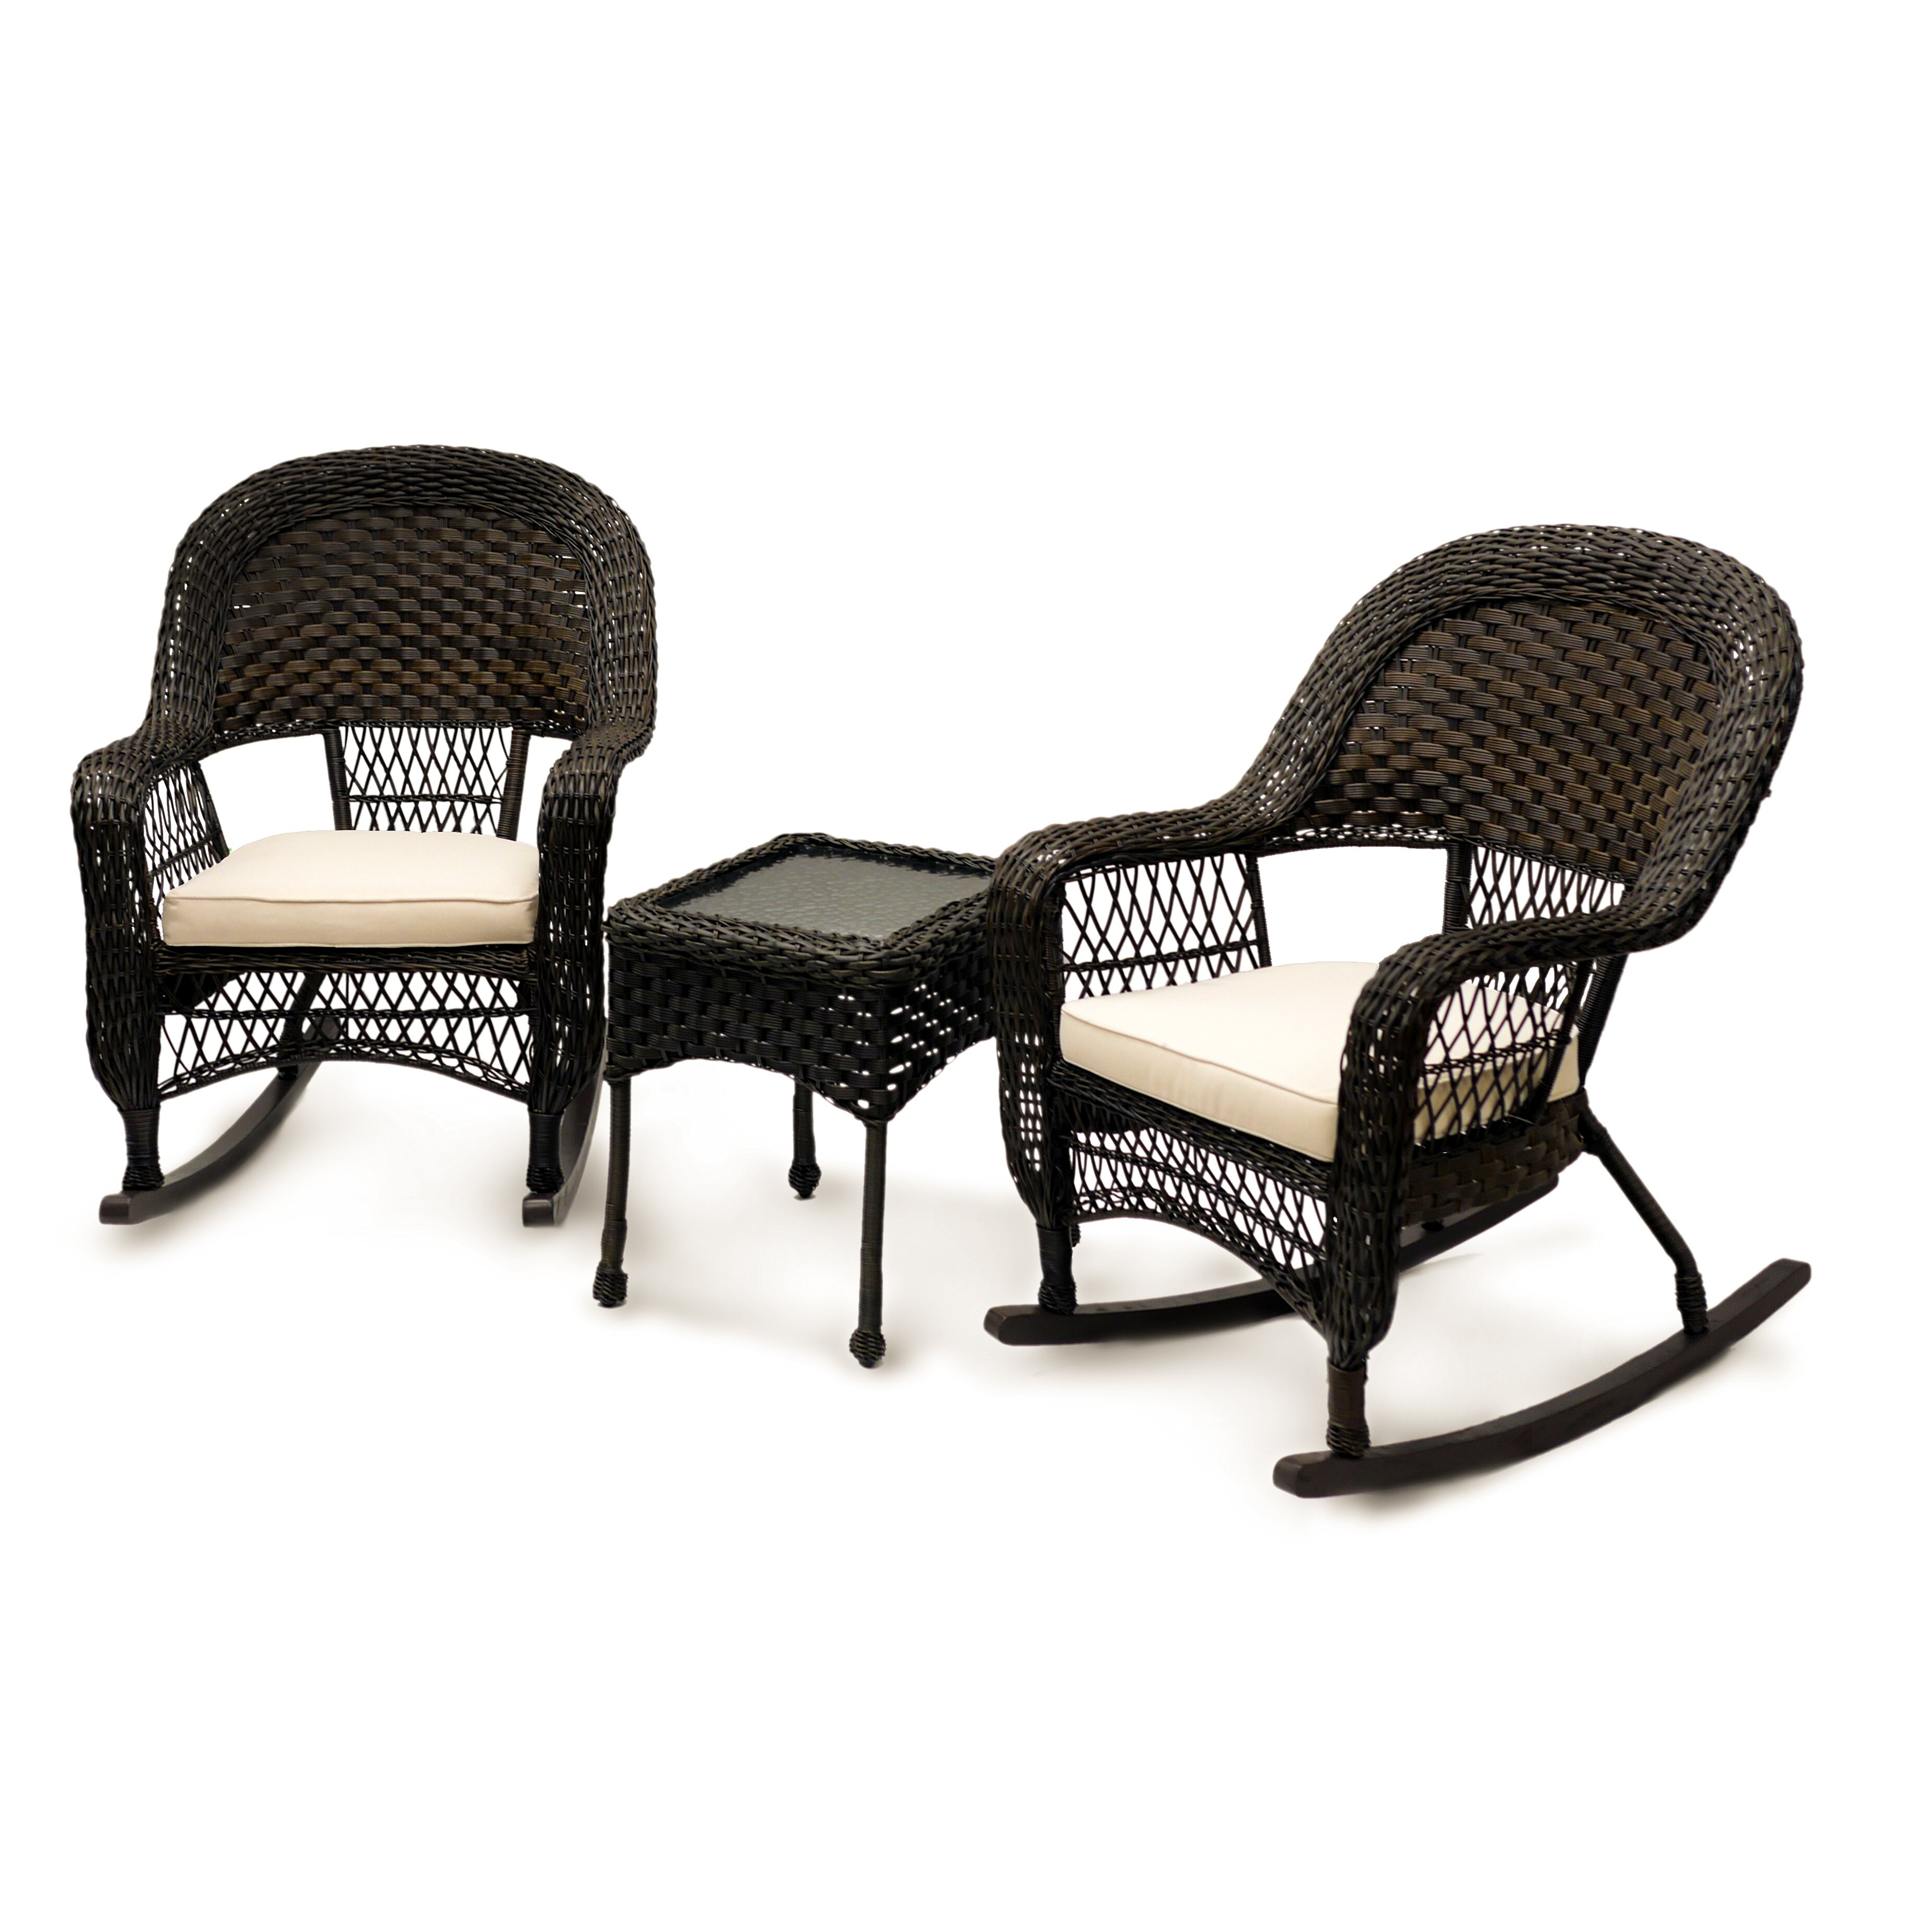 Veranda 5 Piece Resin Wicker Curved Outdoor Sectional W